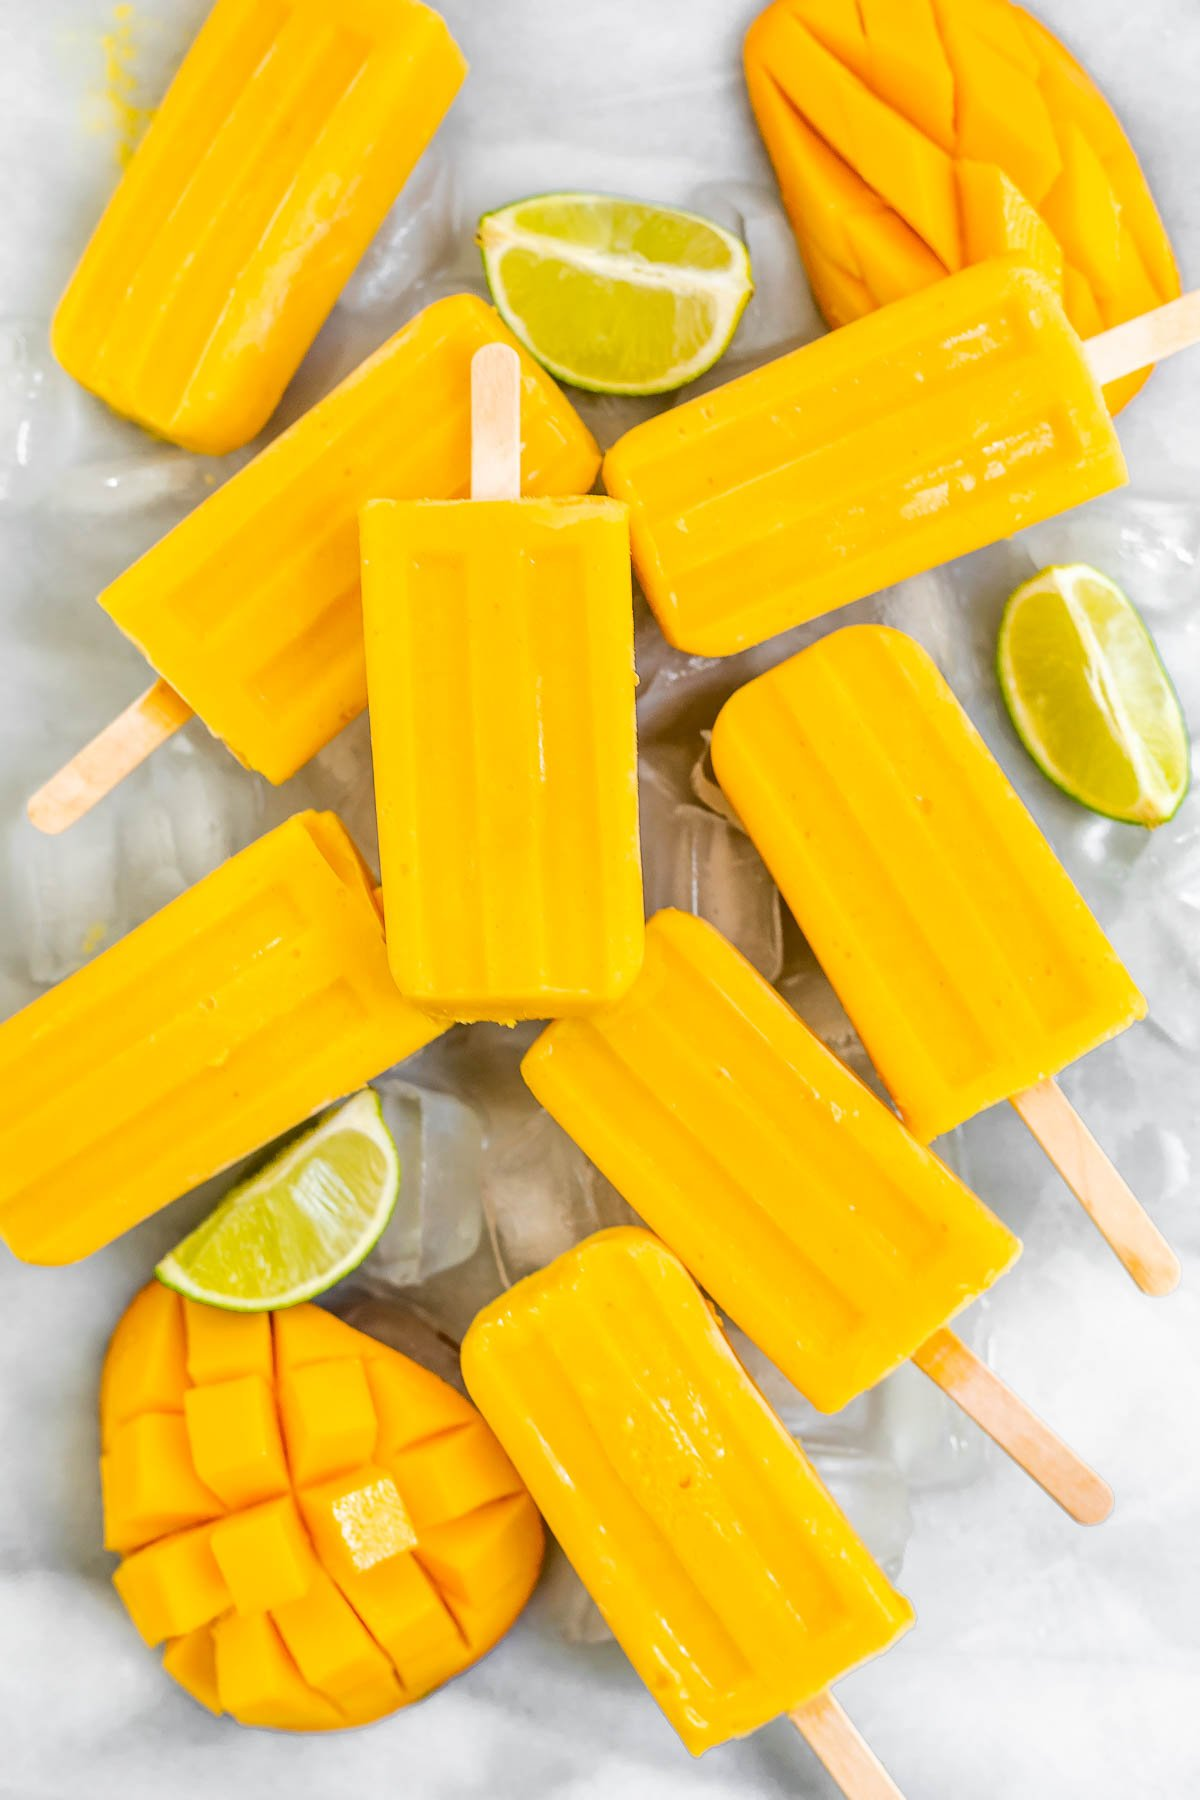 Mango popsicles with lime wedges over ice.